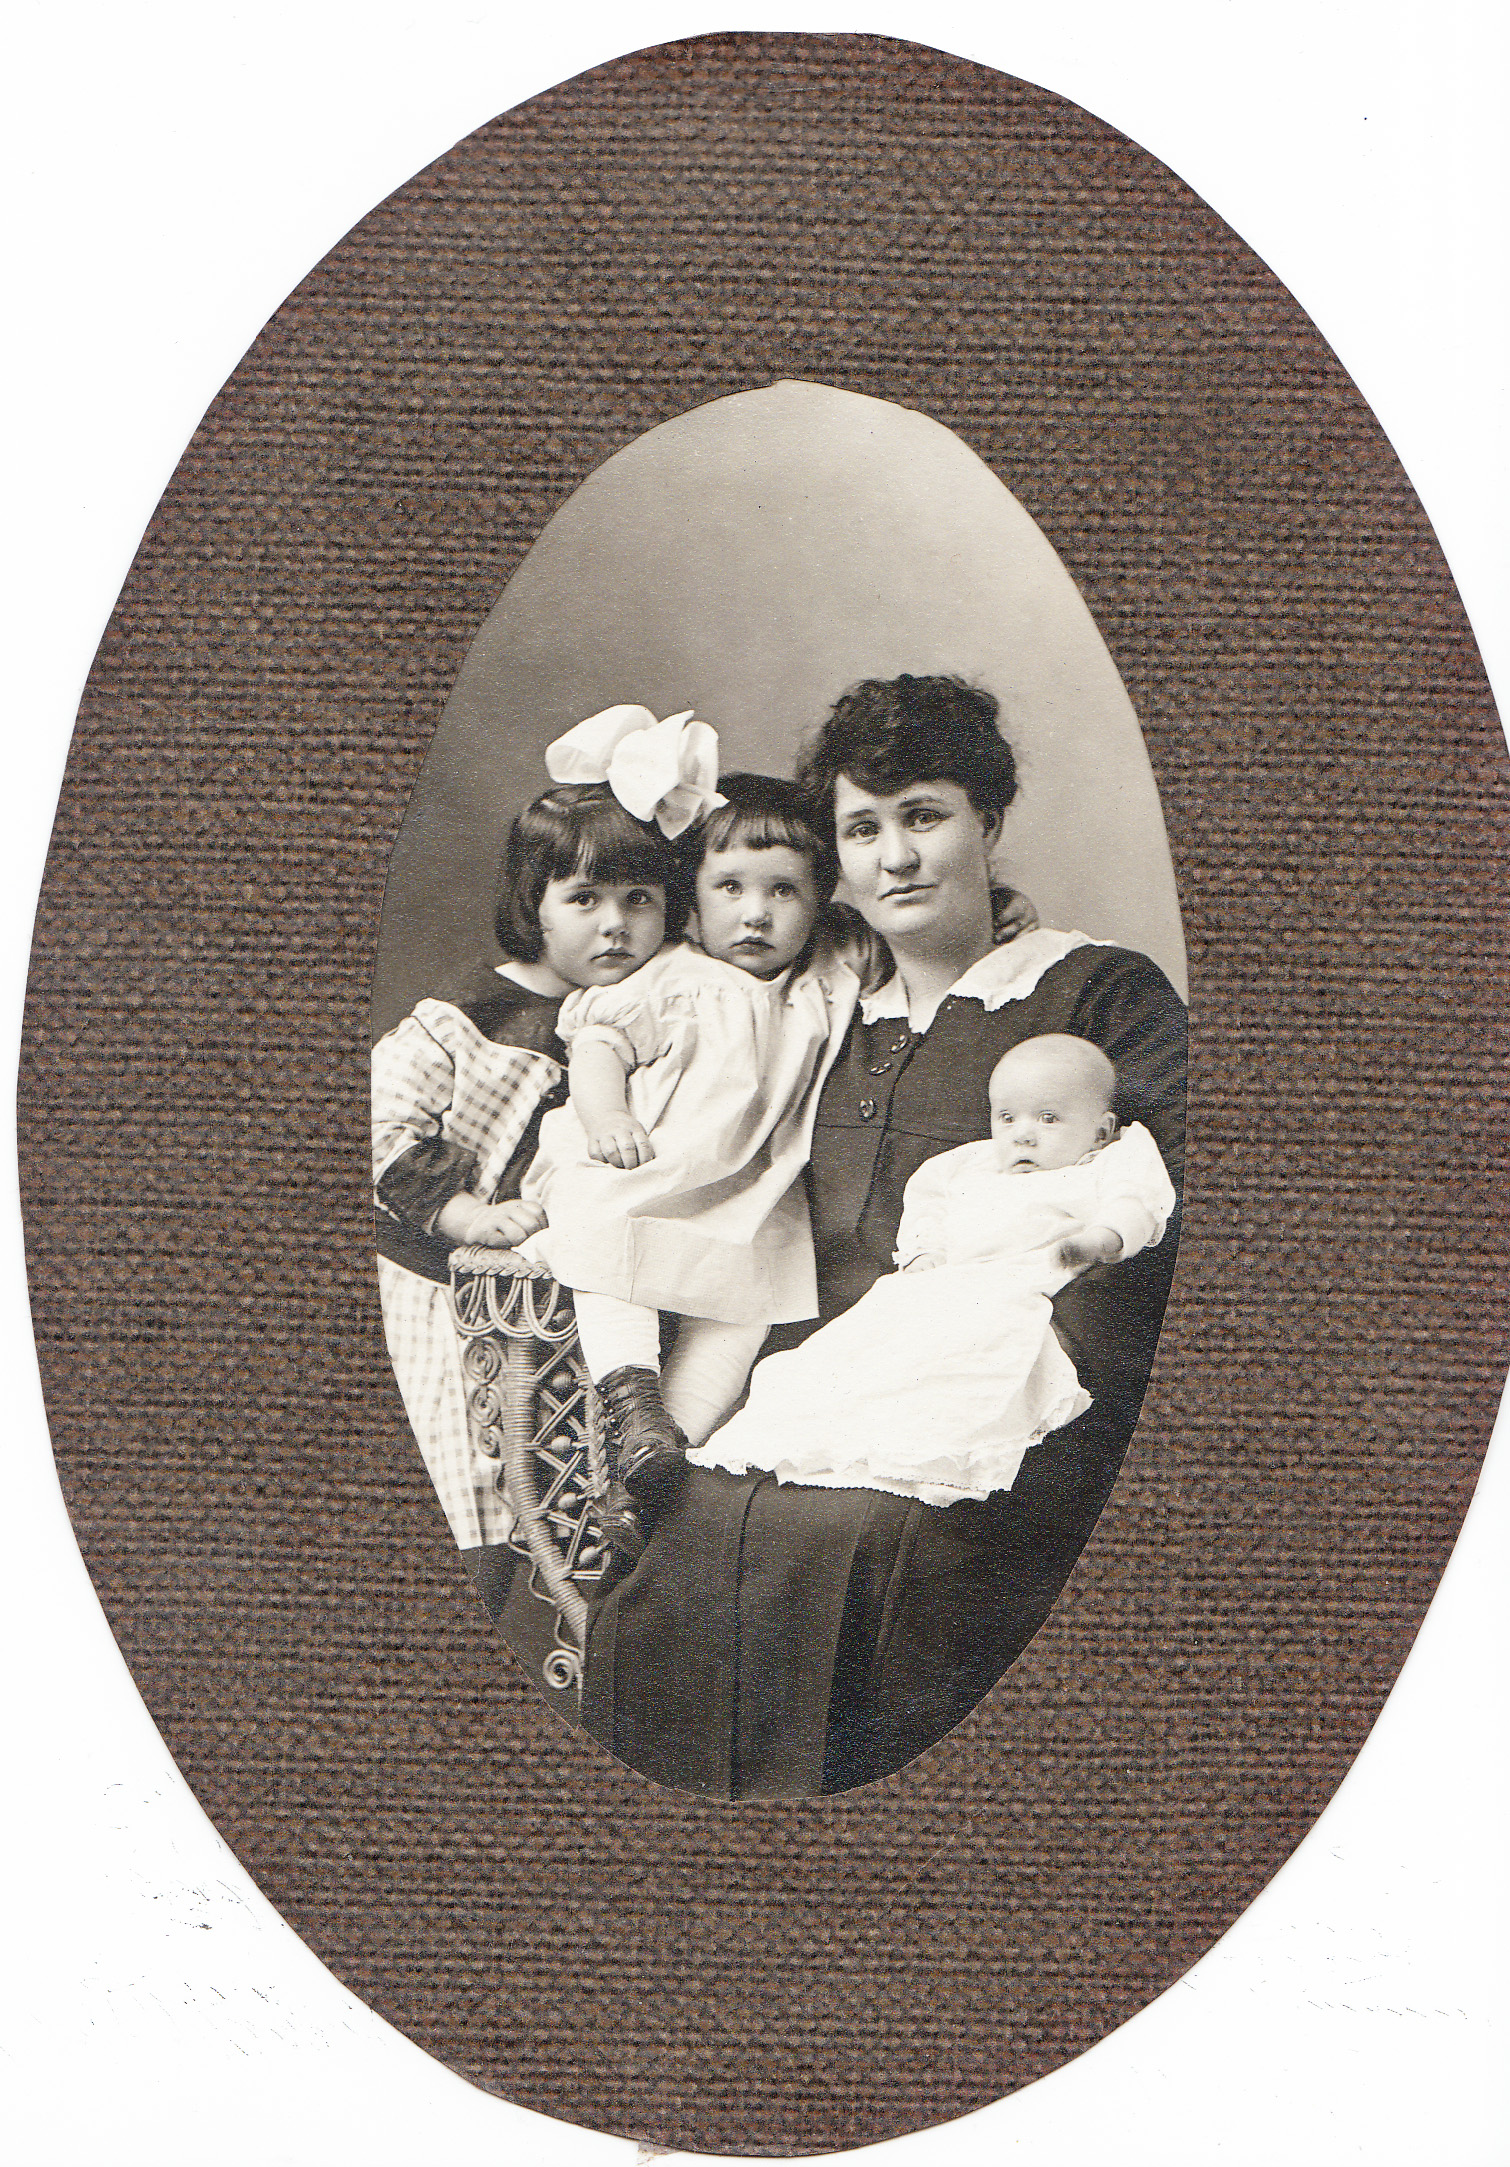 Del's maternal grandmother, Mary Dean, with her brother's childrenand the O'Malley Children.